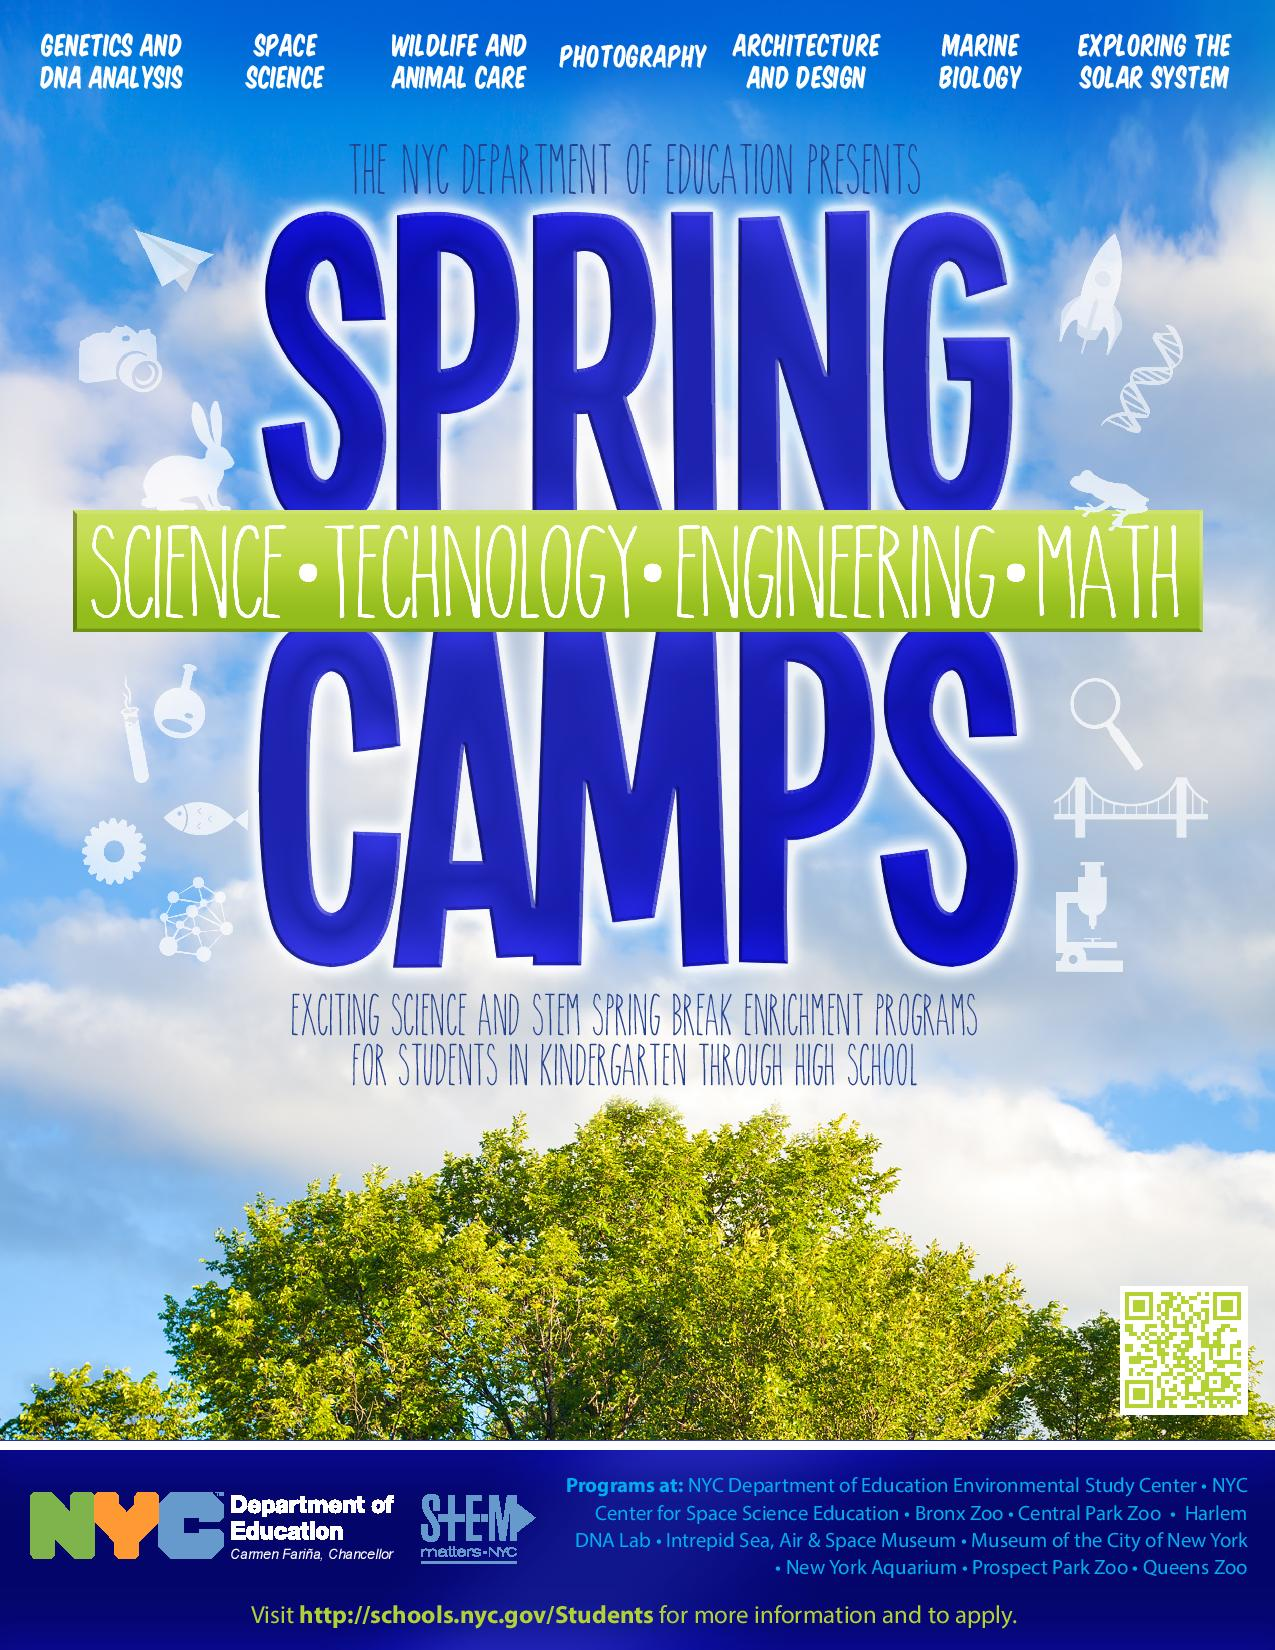 Apply for Free Science and STEM Enrichment Programs during Spring Break